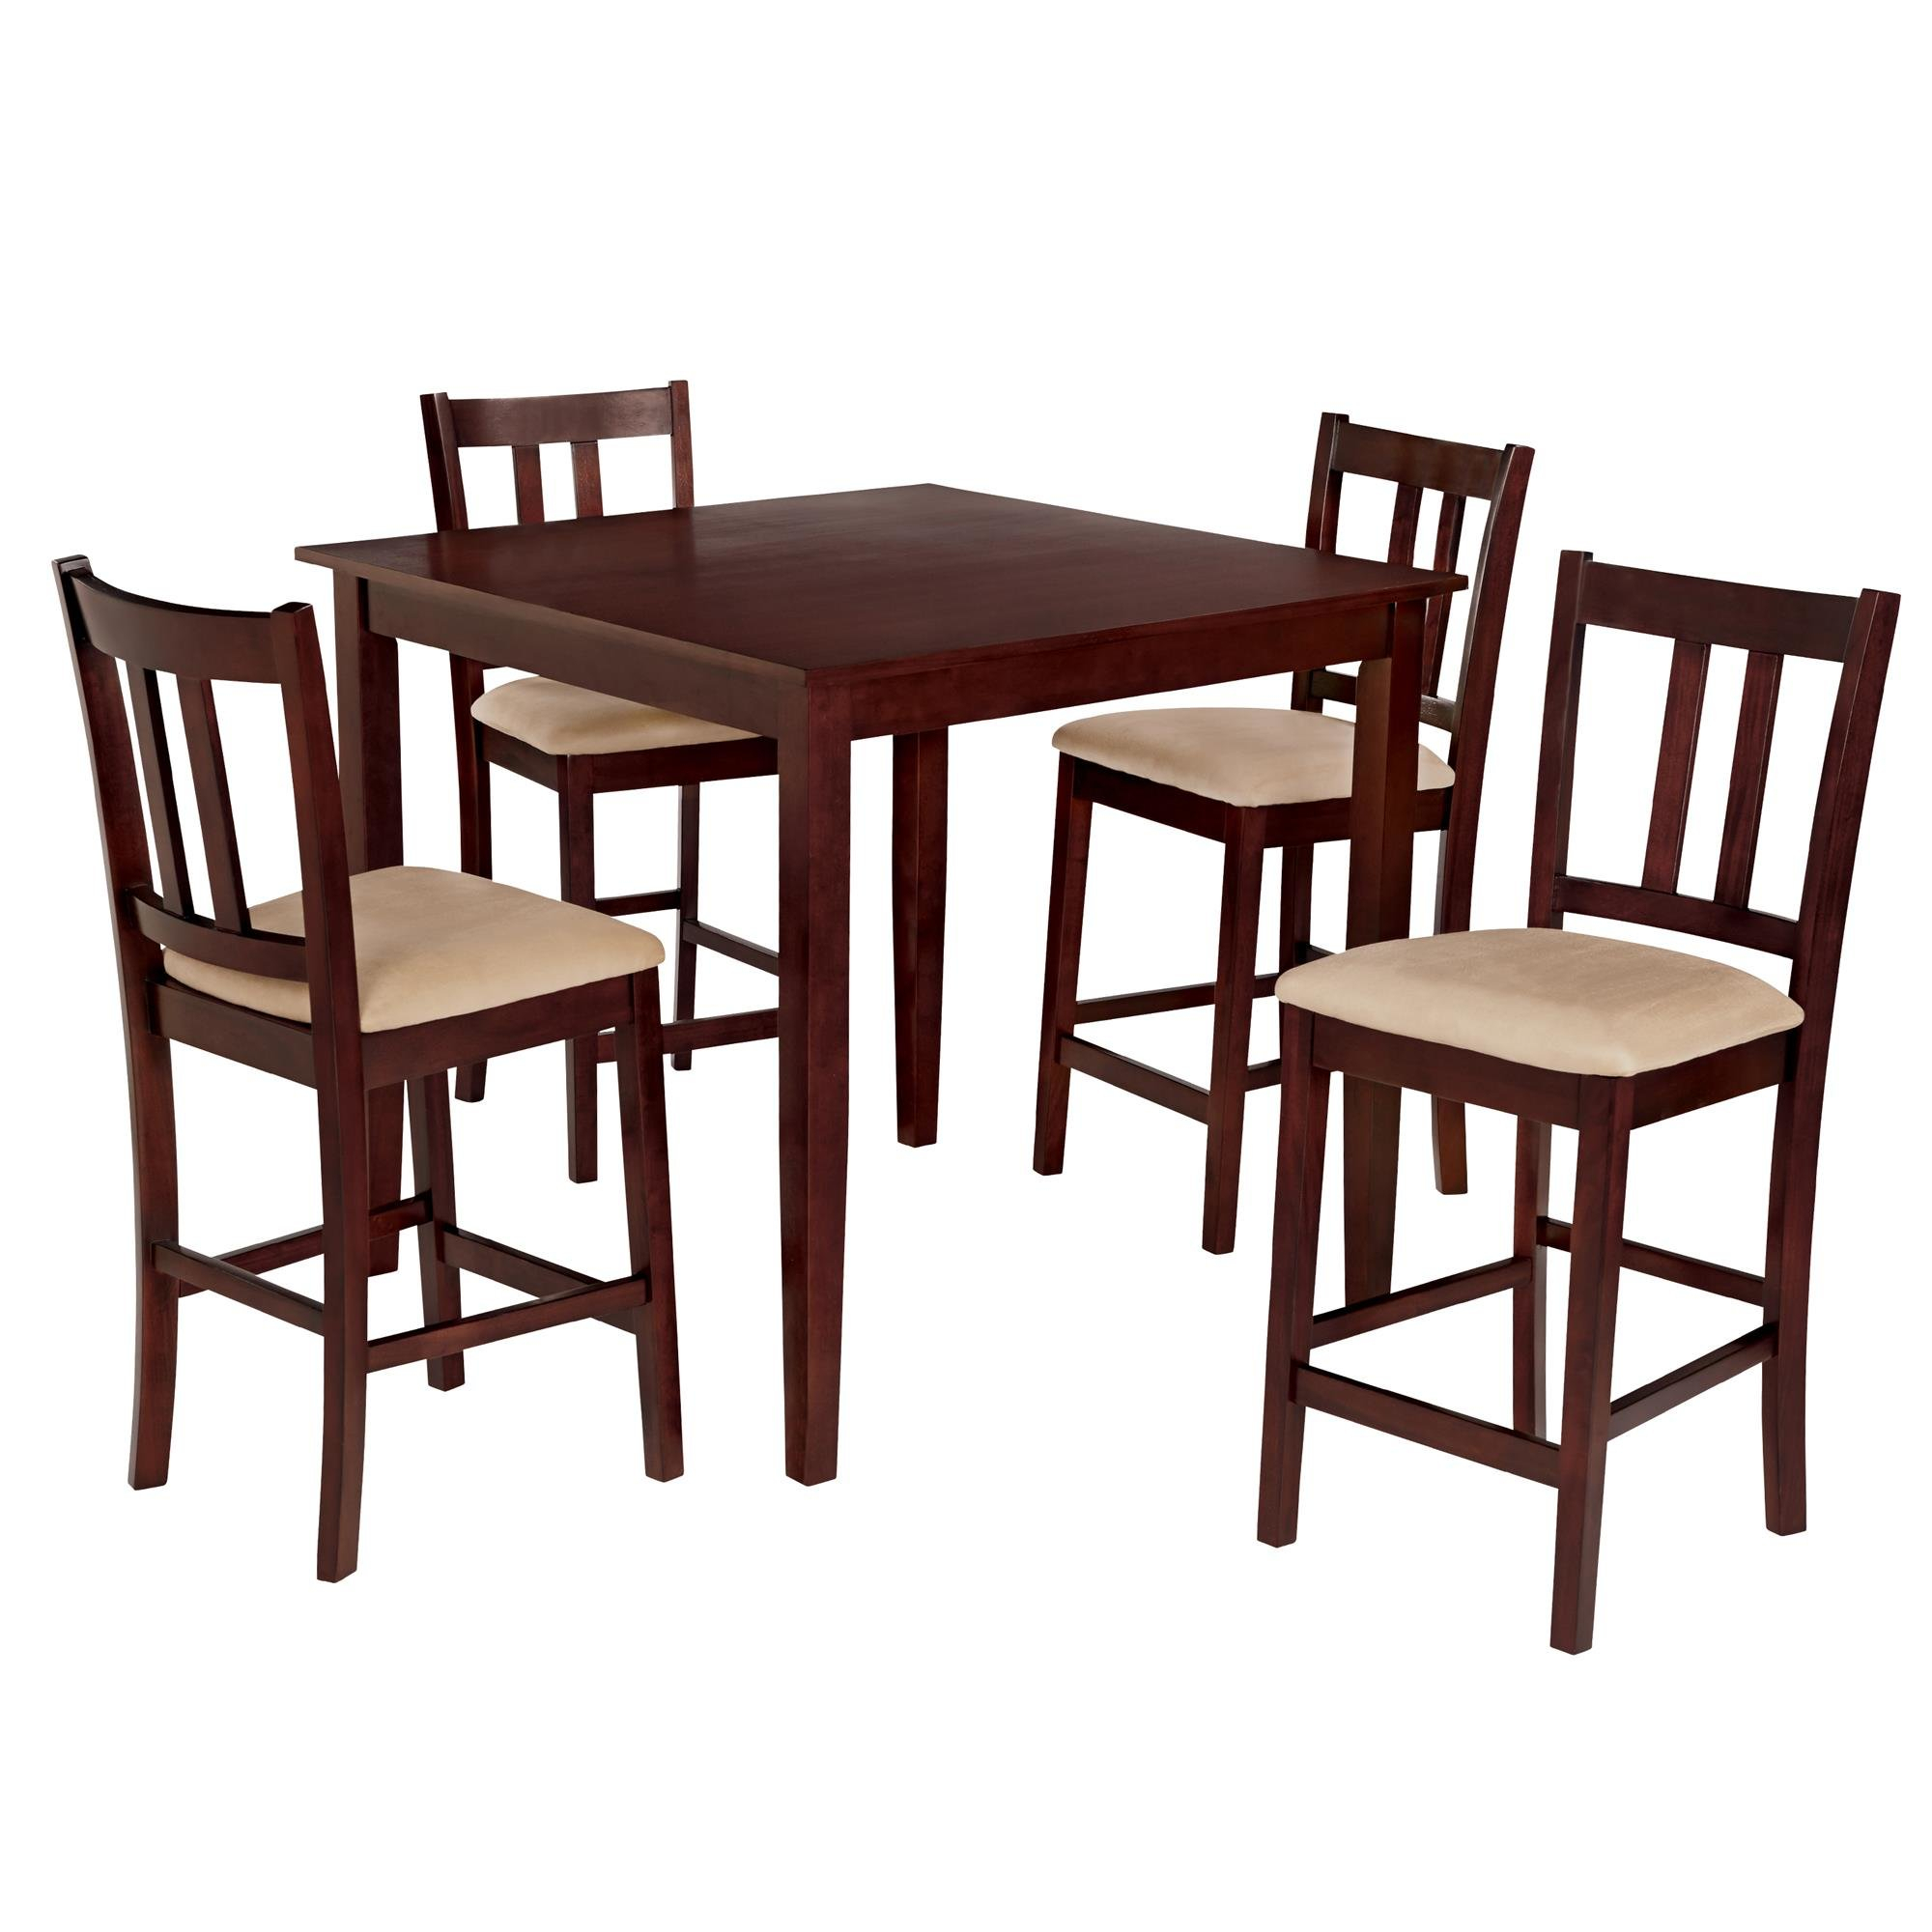 Atterberry 5 Piece Solid Wood Dining Set Regarding 2018 Sundberg 5 Piece Solid Wood Dining Sets (Image 2 of 20)